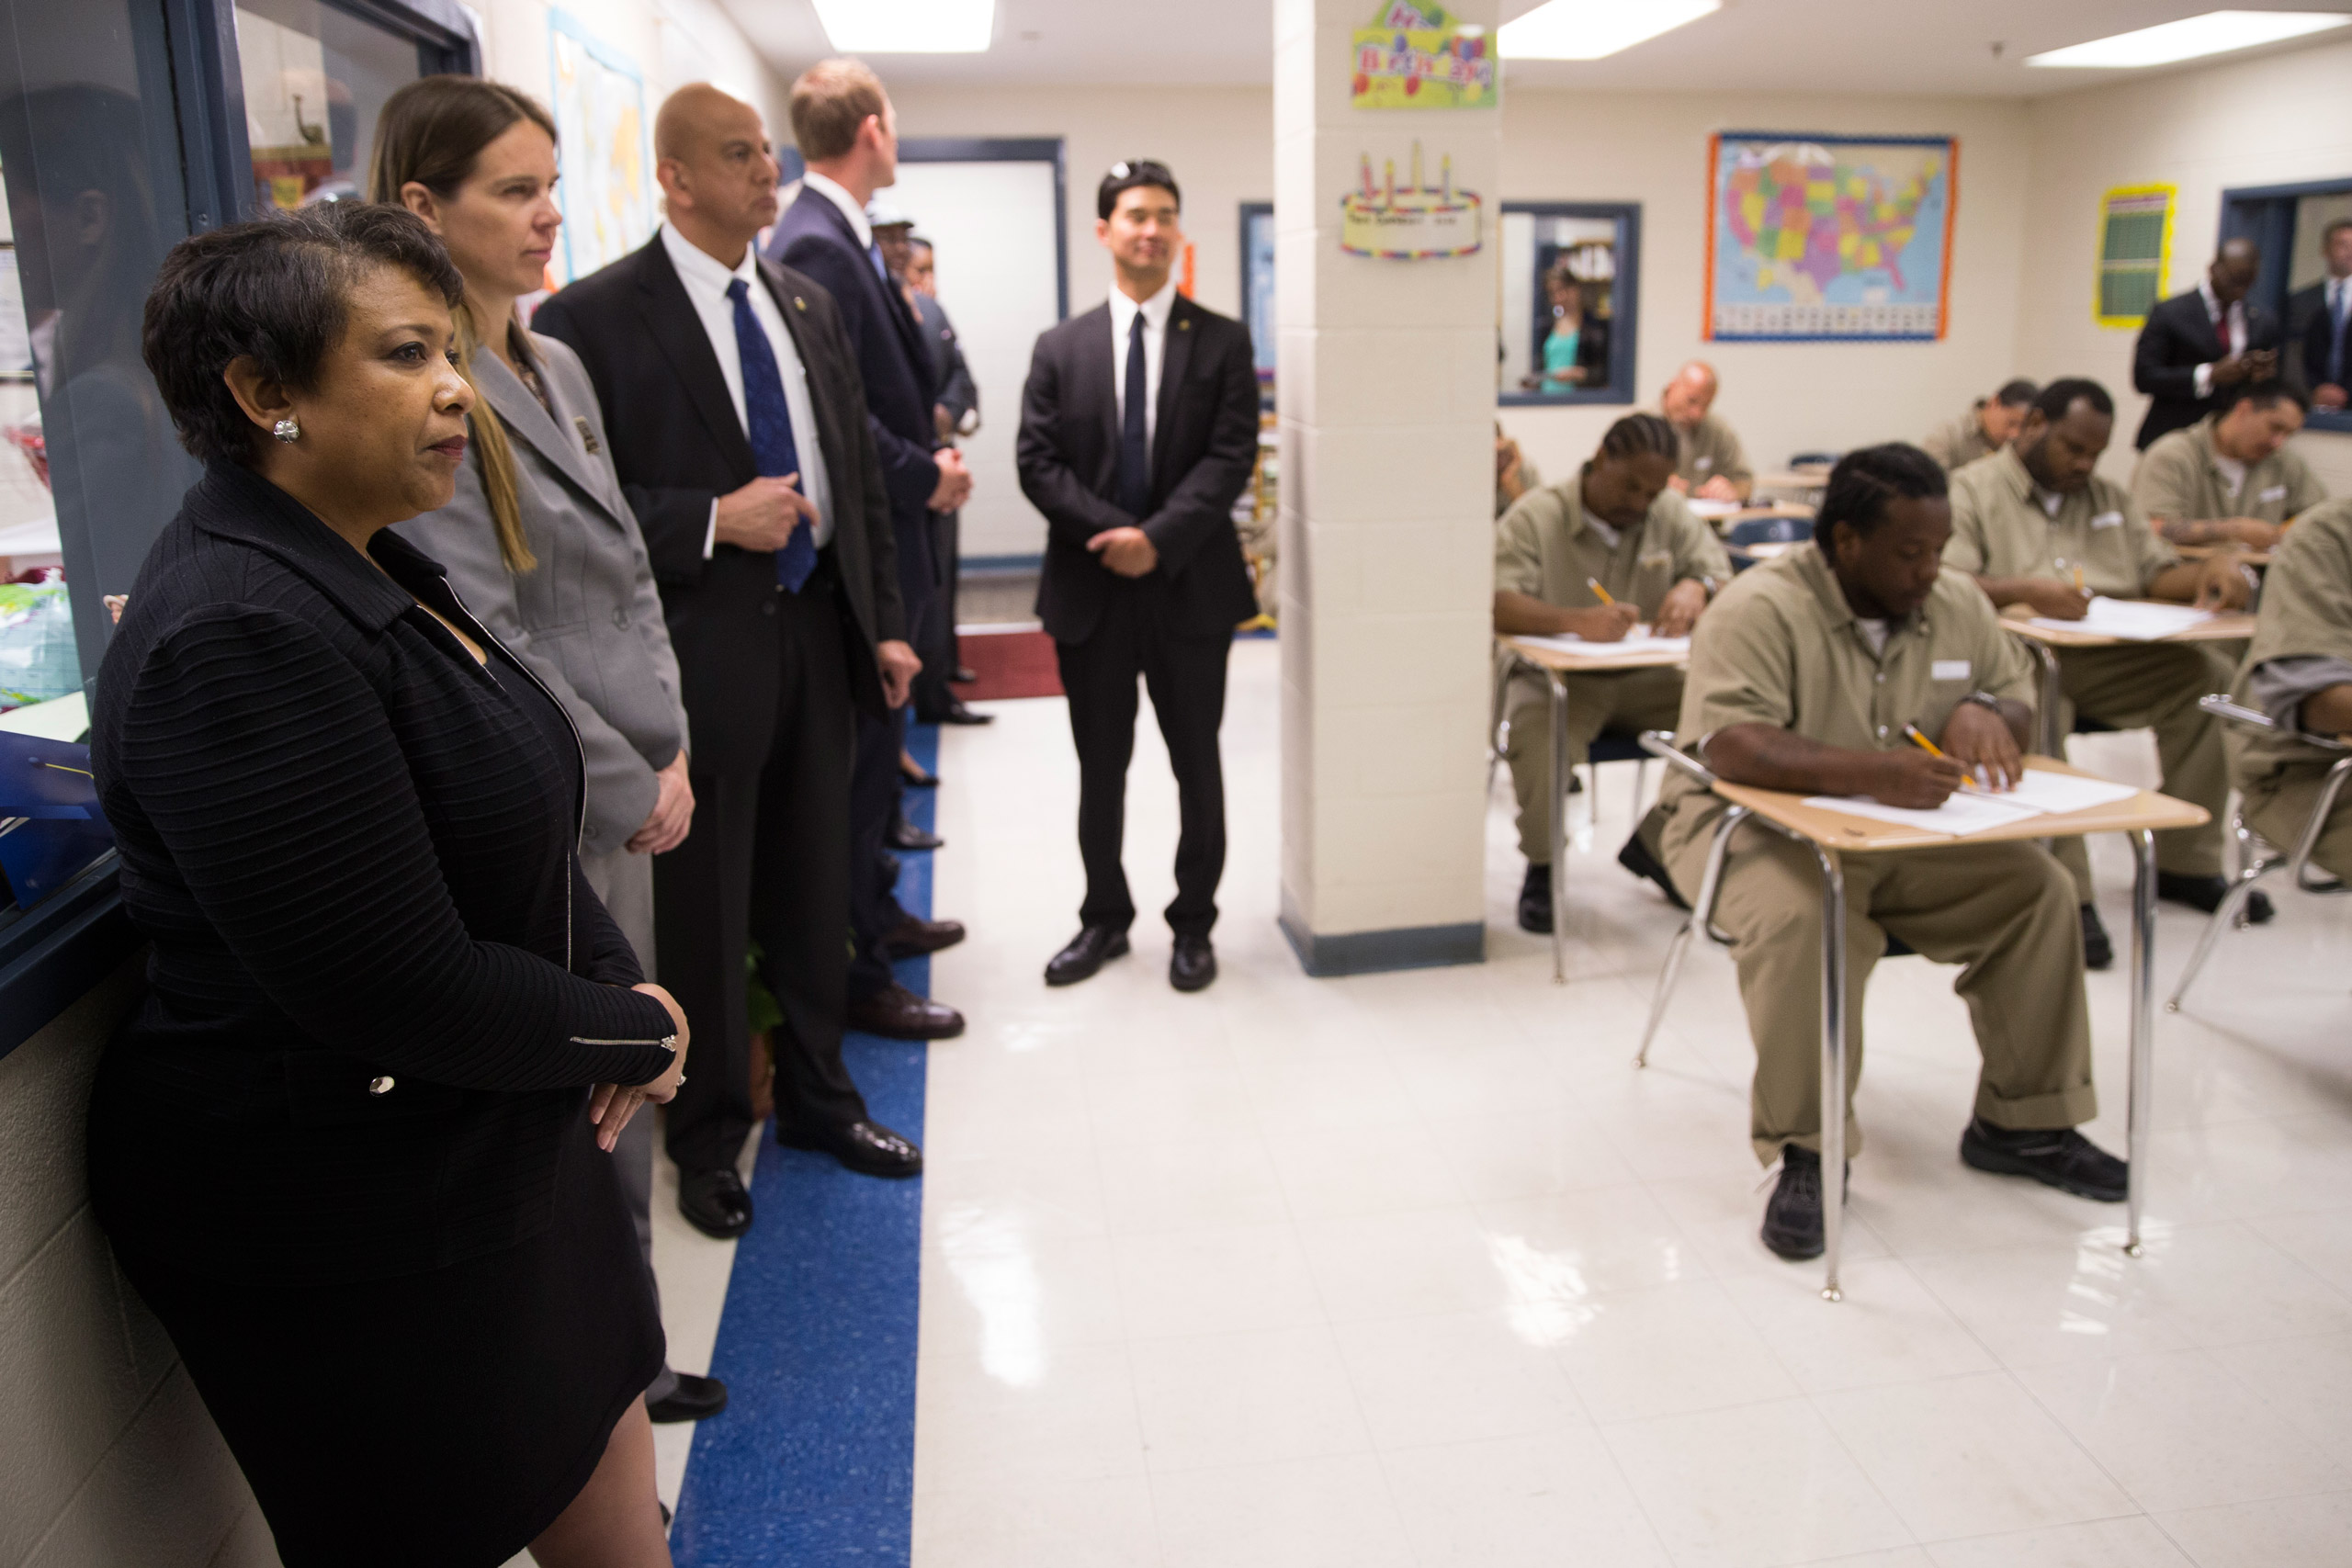 Attorney General Loretta Lynch, left, visits a classroom during a visit to the Talladega Federal Correctional Institution in Talladega, Ala., on April 29, 2016.